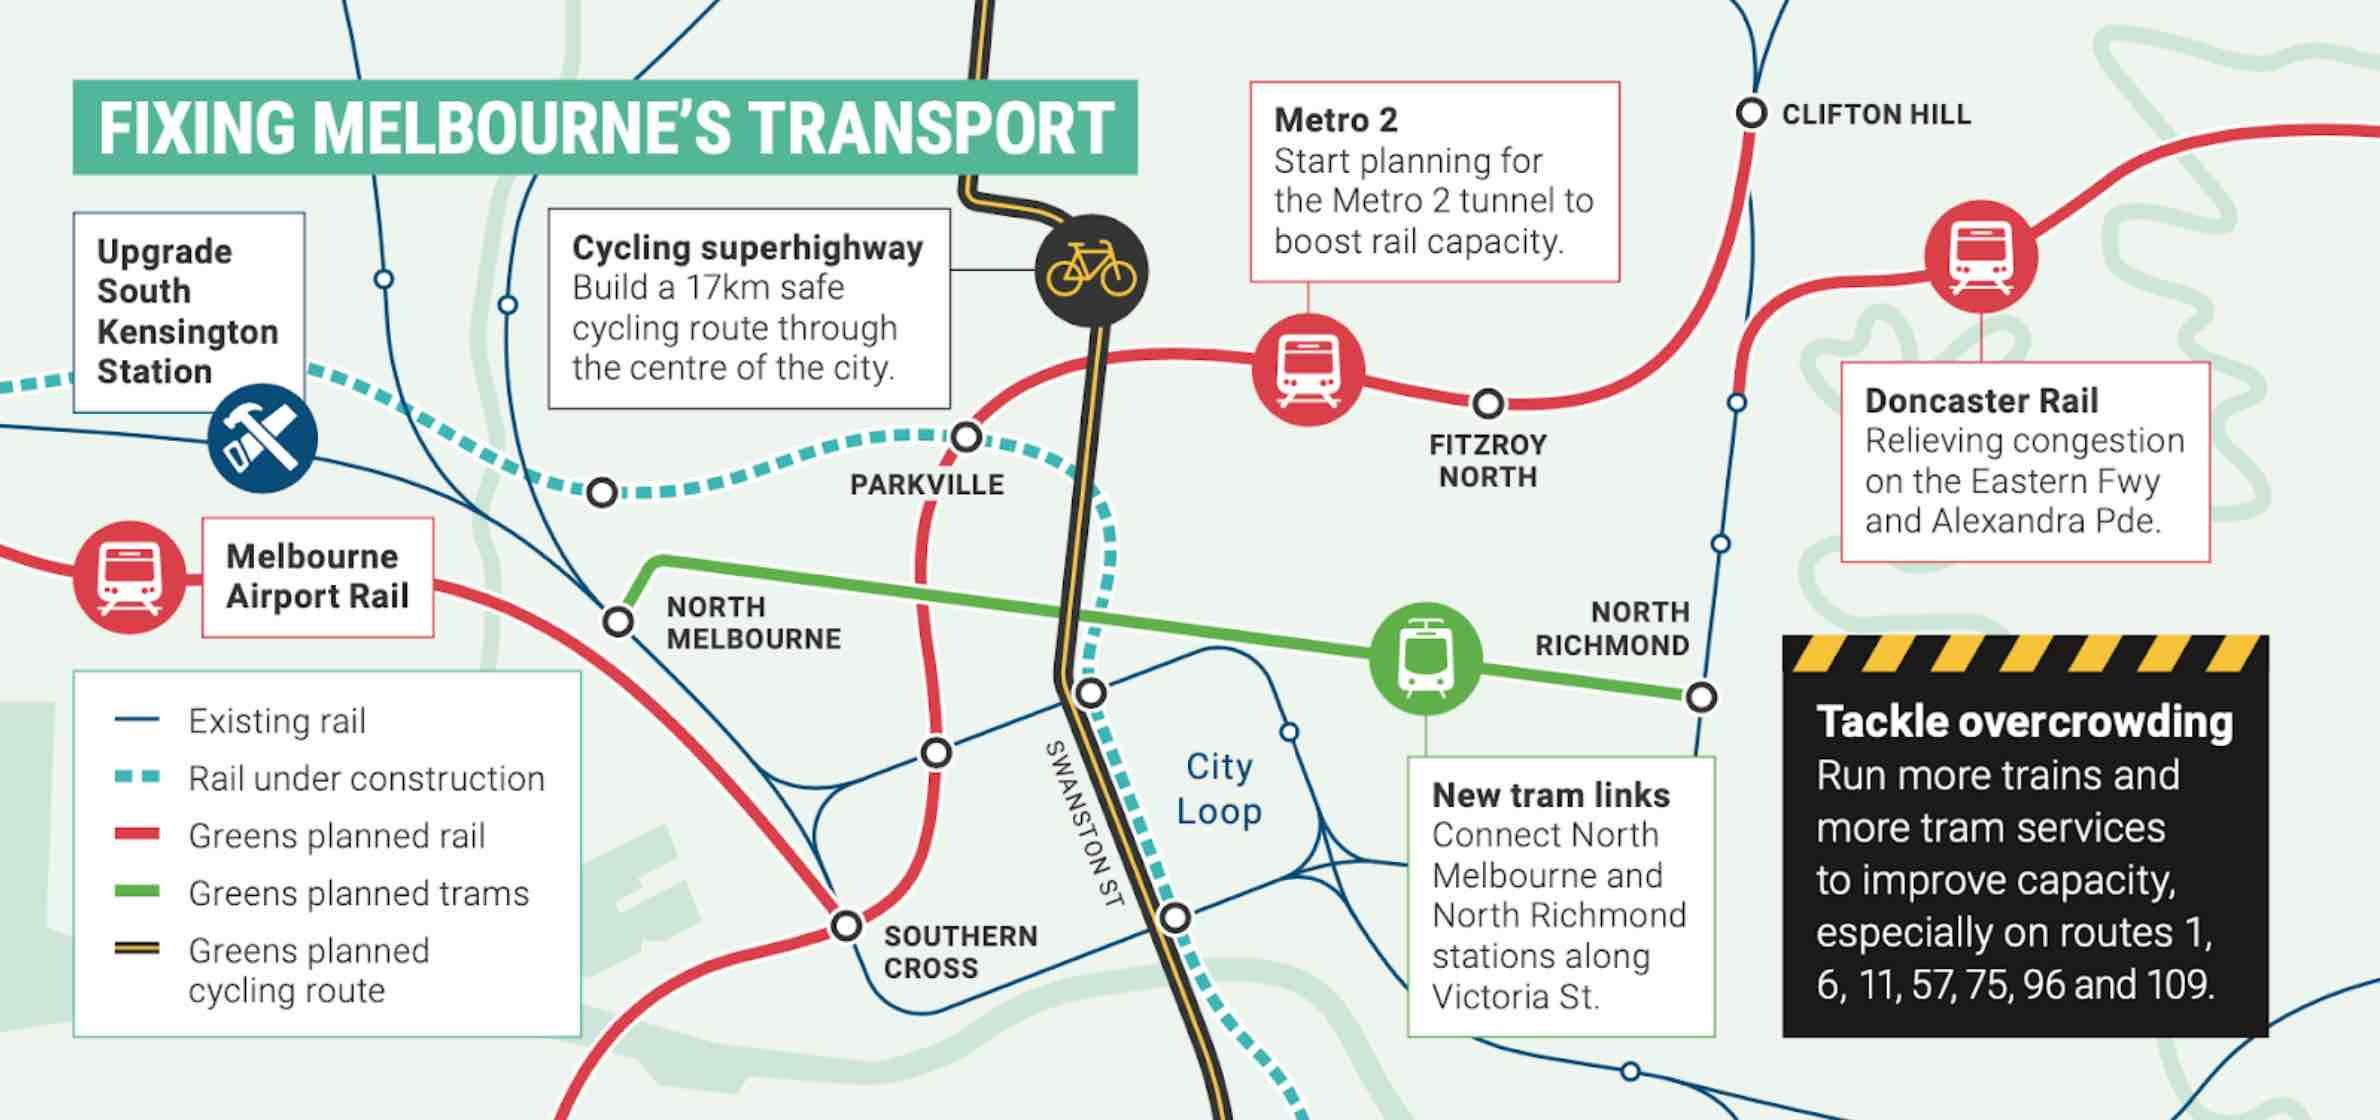 Fixing Melbourne's Transport infographic